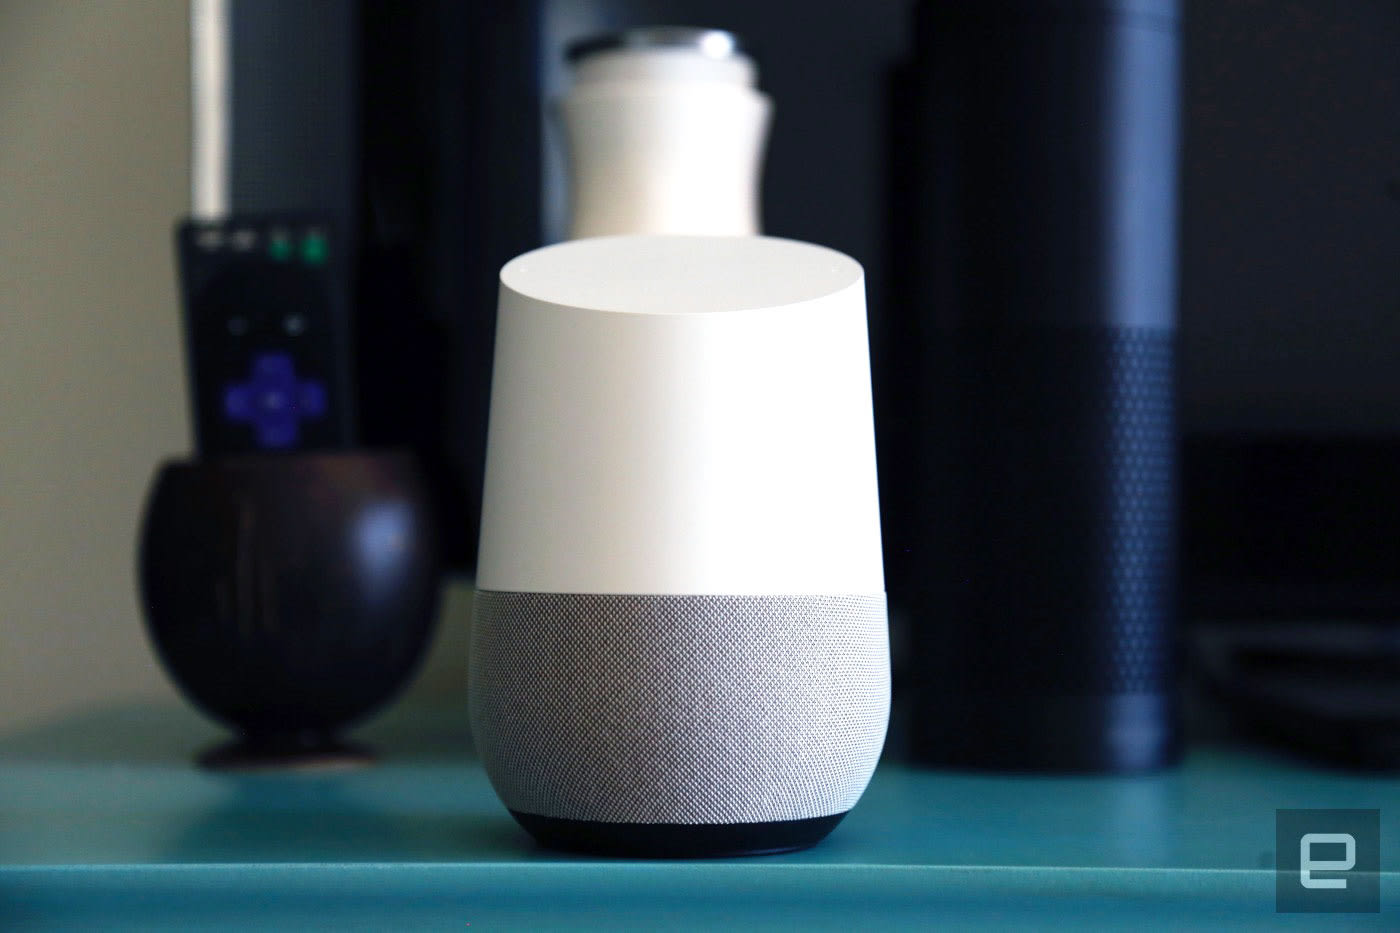 Google Assistant Now Helps With Your Shopping On Google